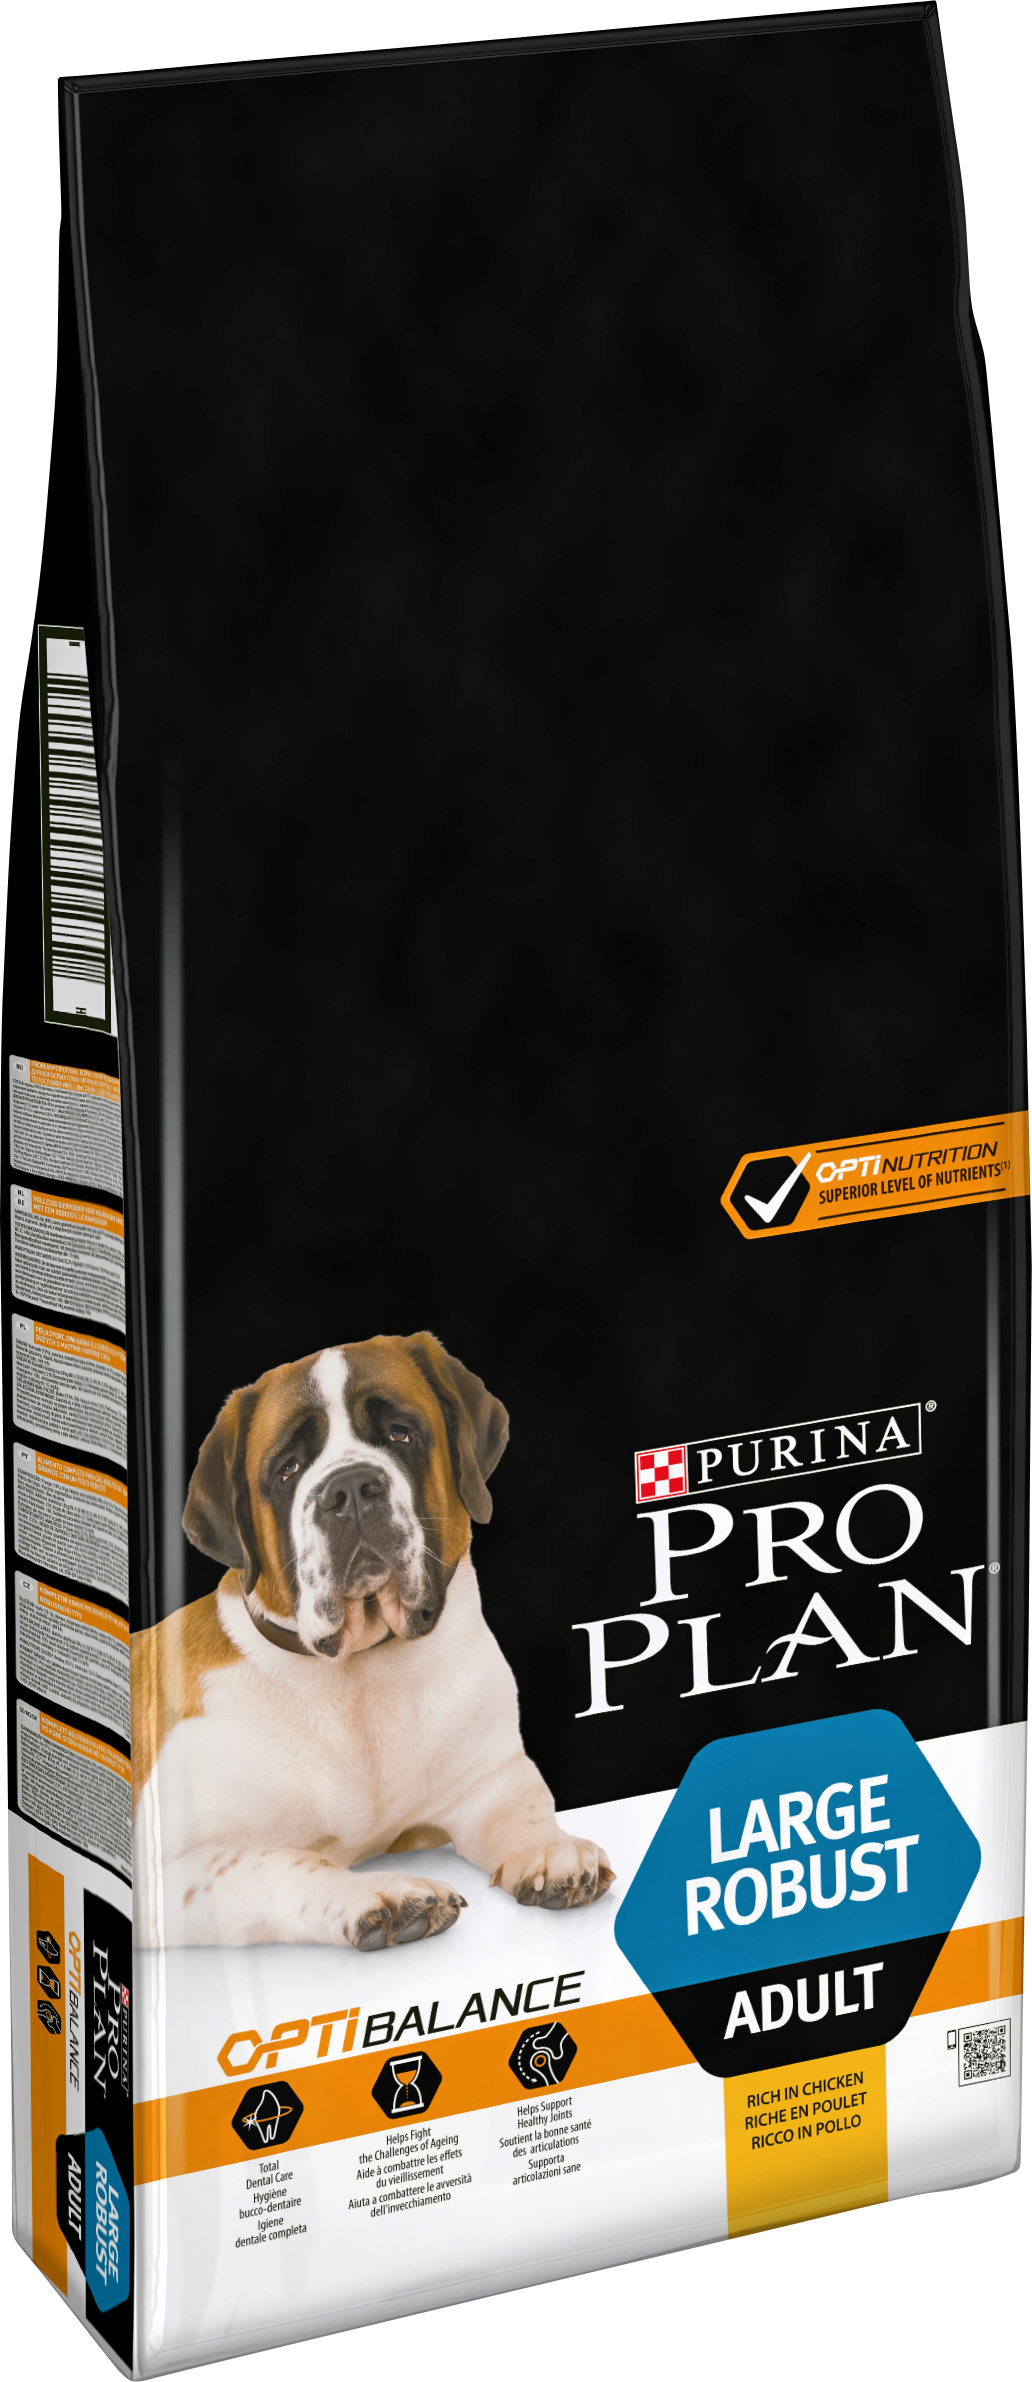 Hundfoder Pro Plan Large Adult Robust, 14 kg